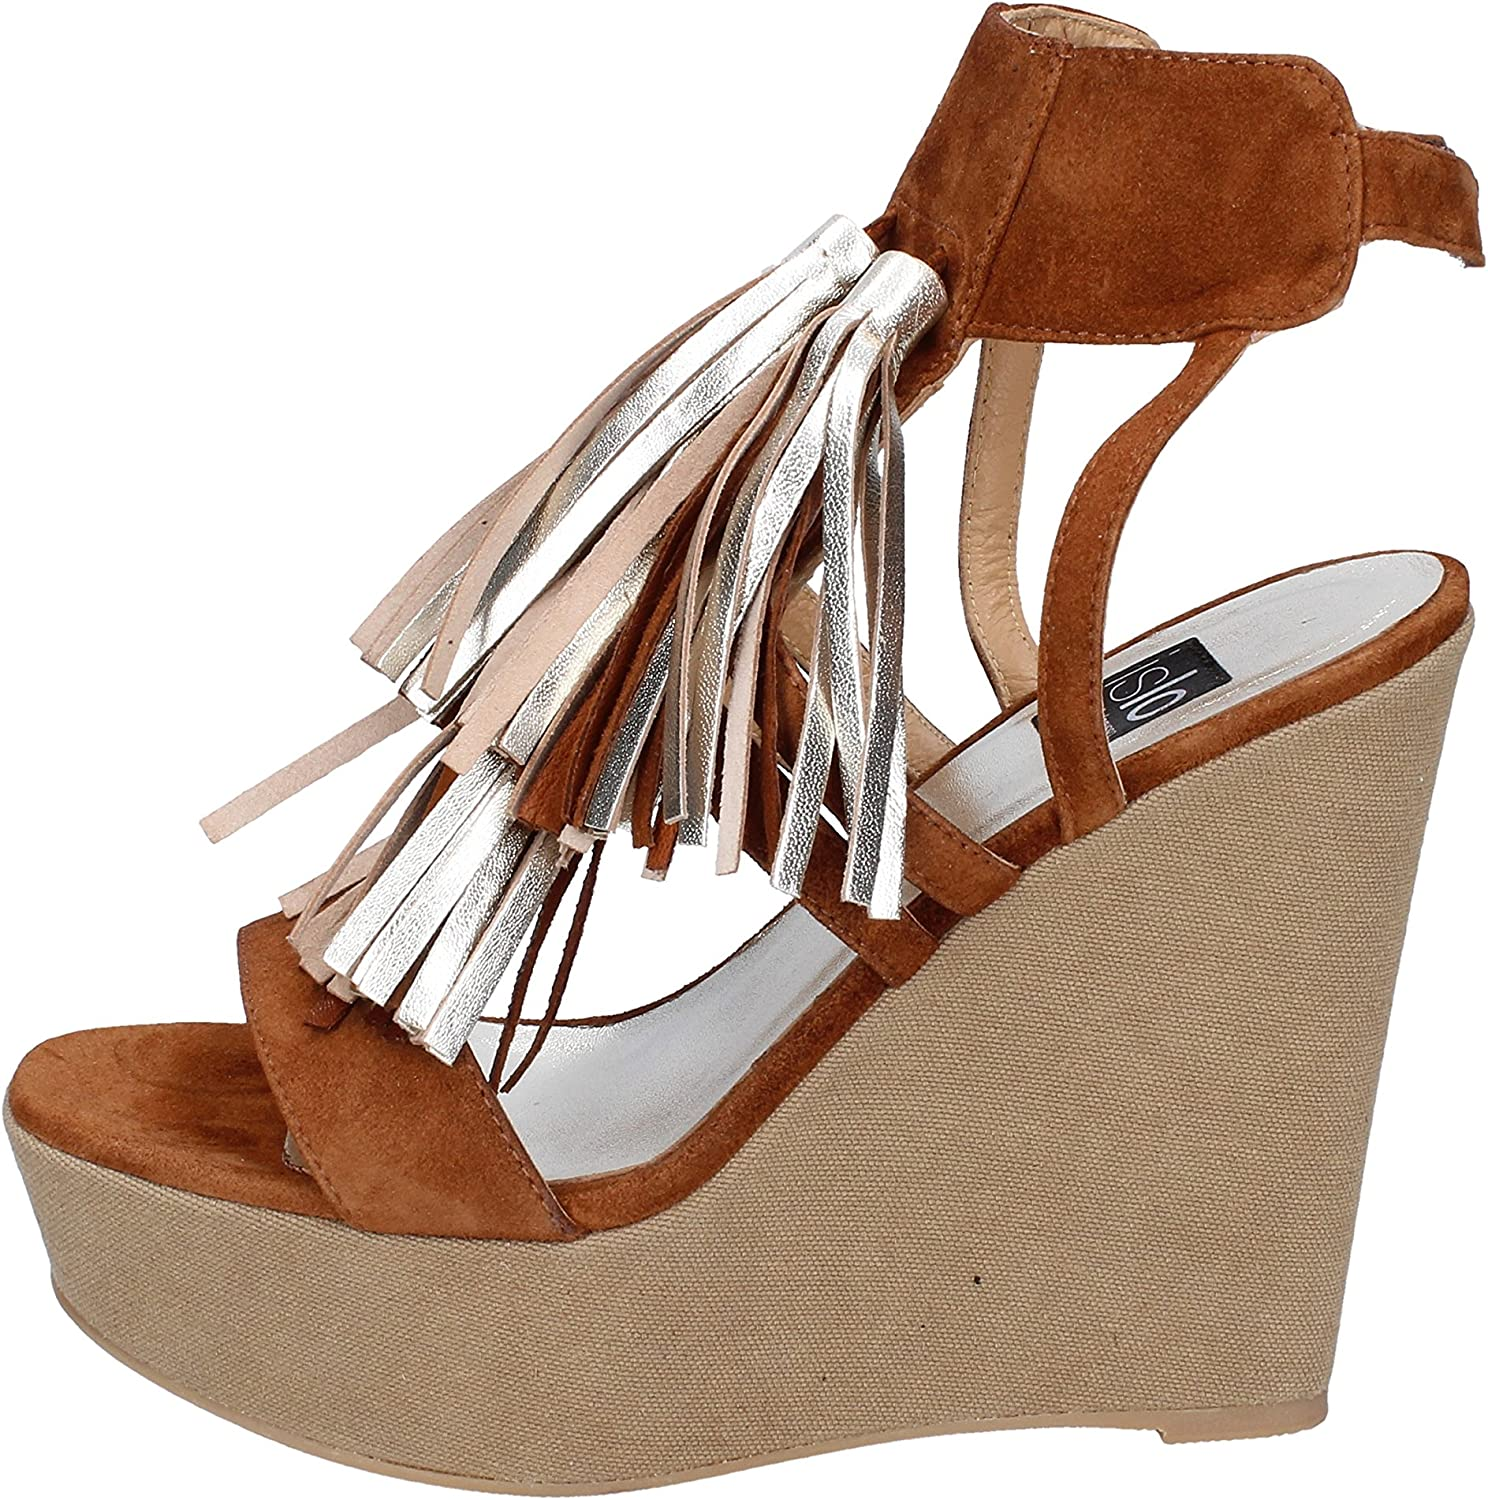 ISLO Sandals Womens Suede Brown